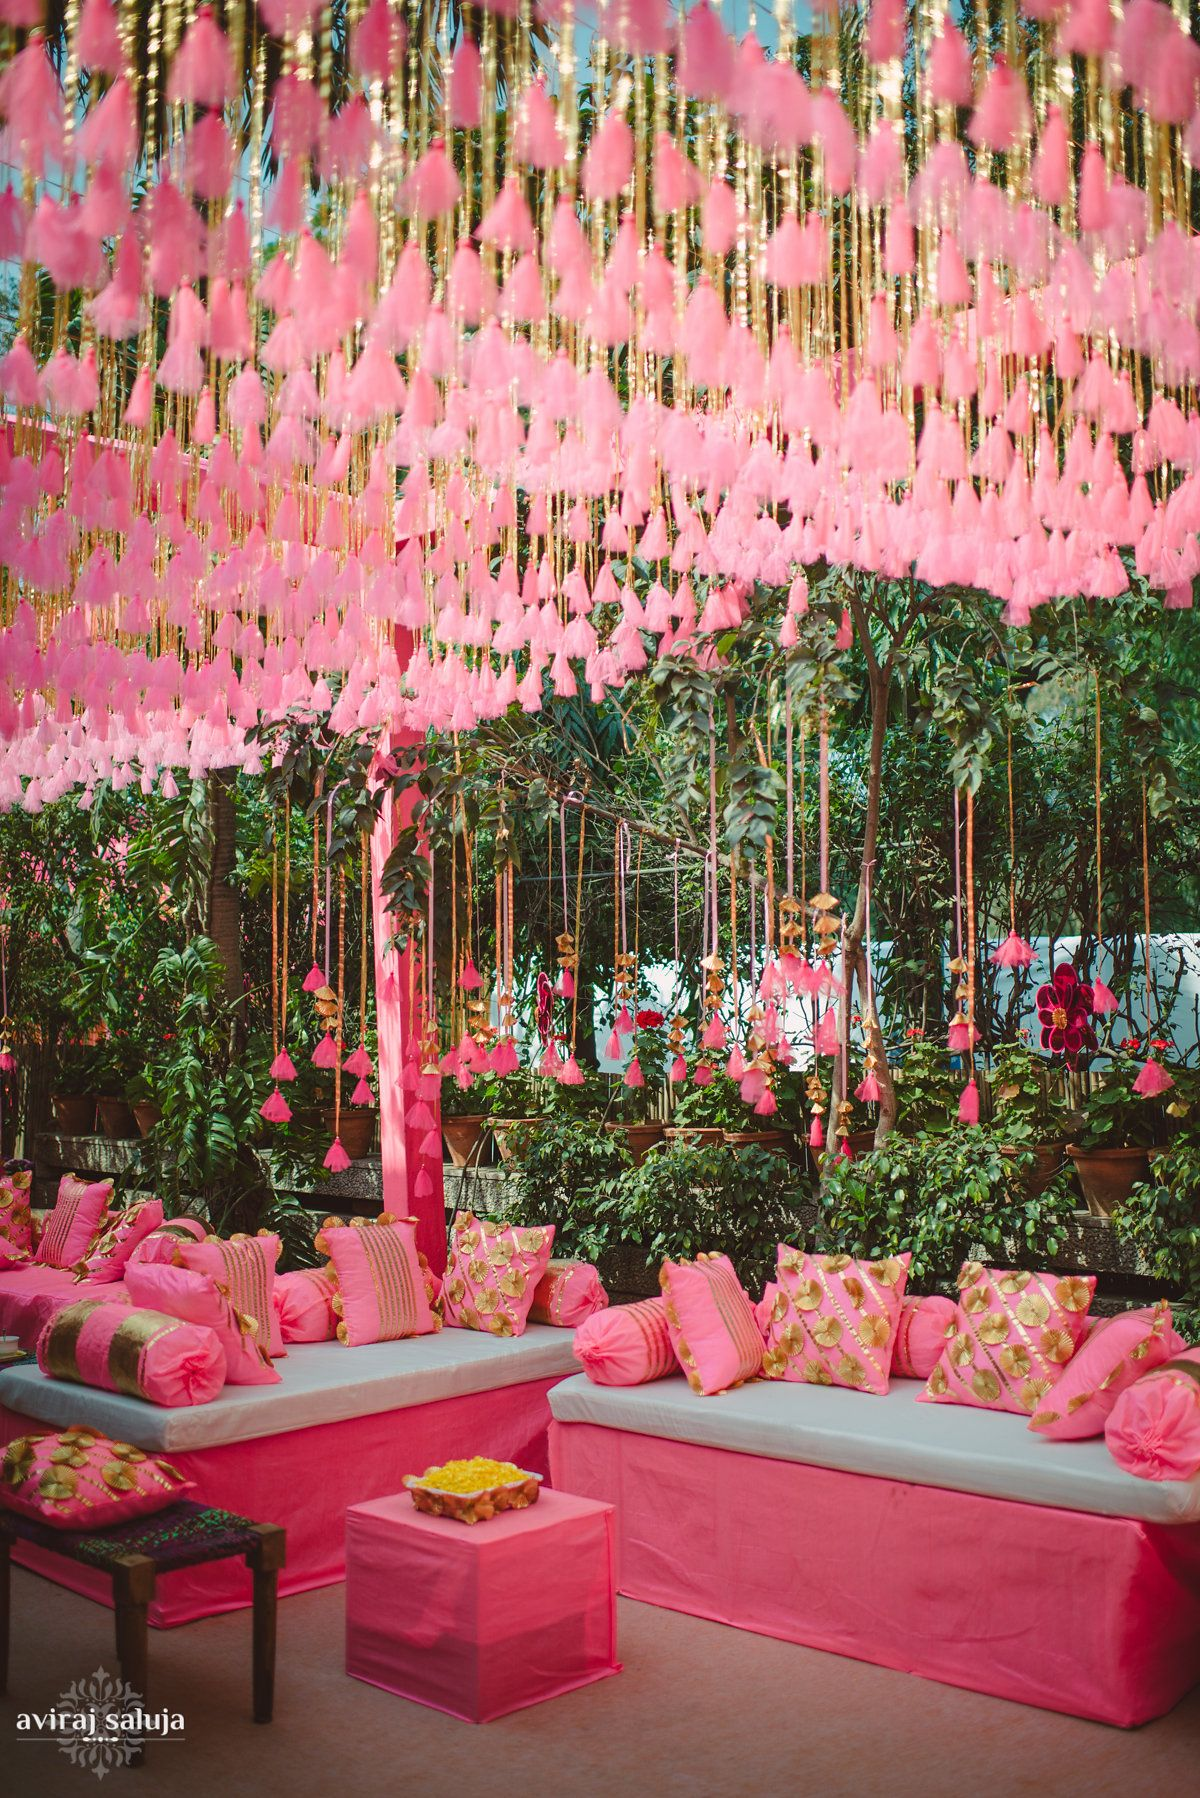 Chic Wedding in Delhi with Exquisite Decor! Indian